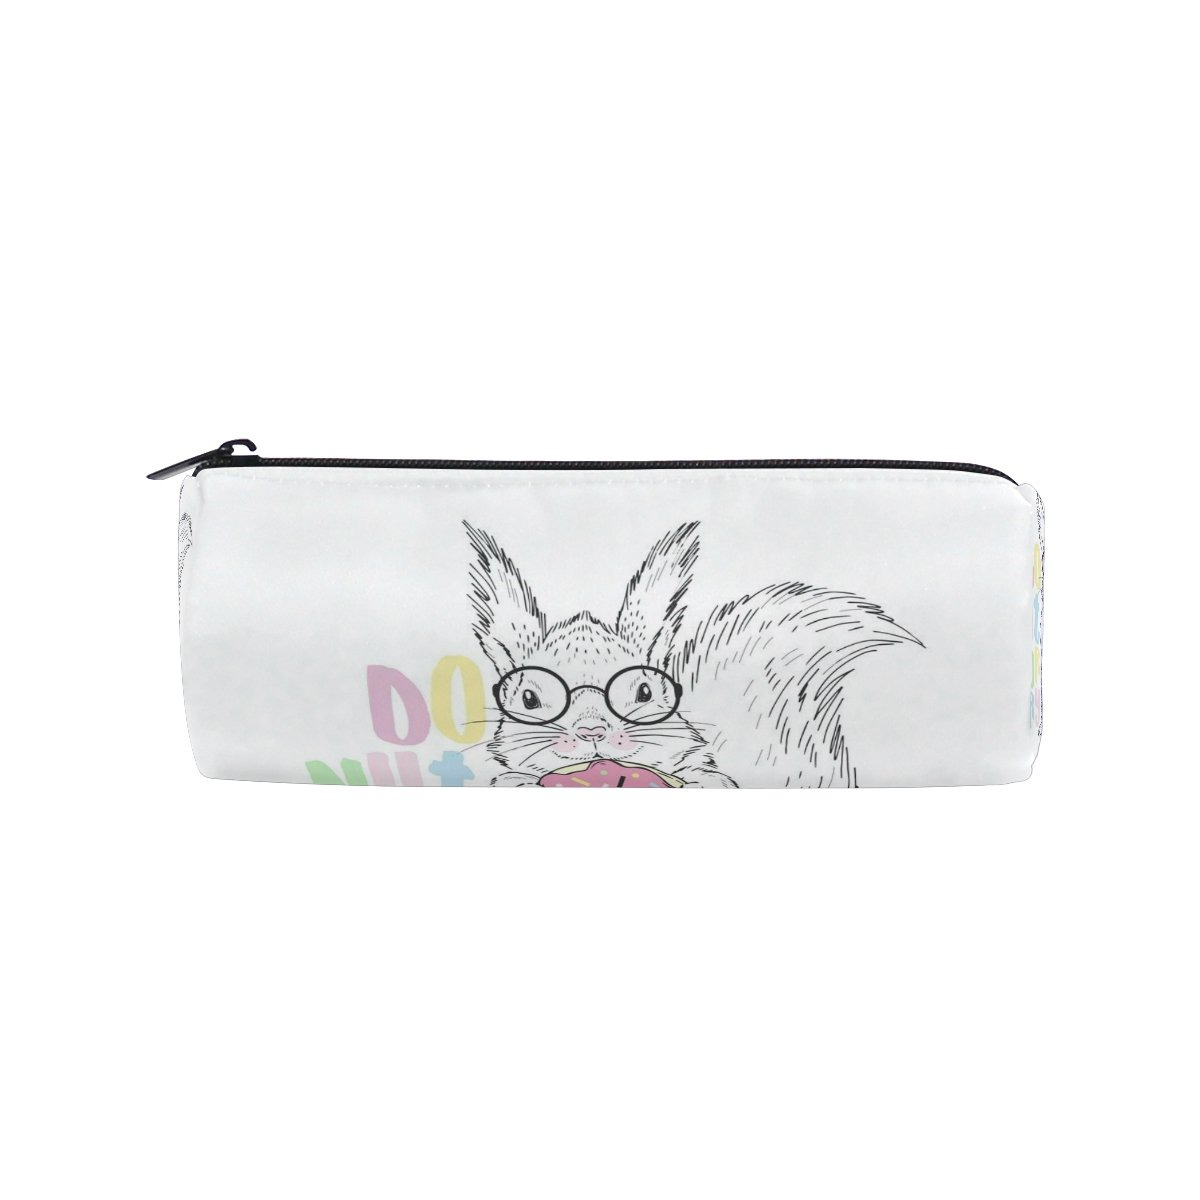 Cooper Girl Happy Squirrel Pencil Bag Pen Case Students Stationery Pouch Zipper Bag for Girls Boys Kids